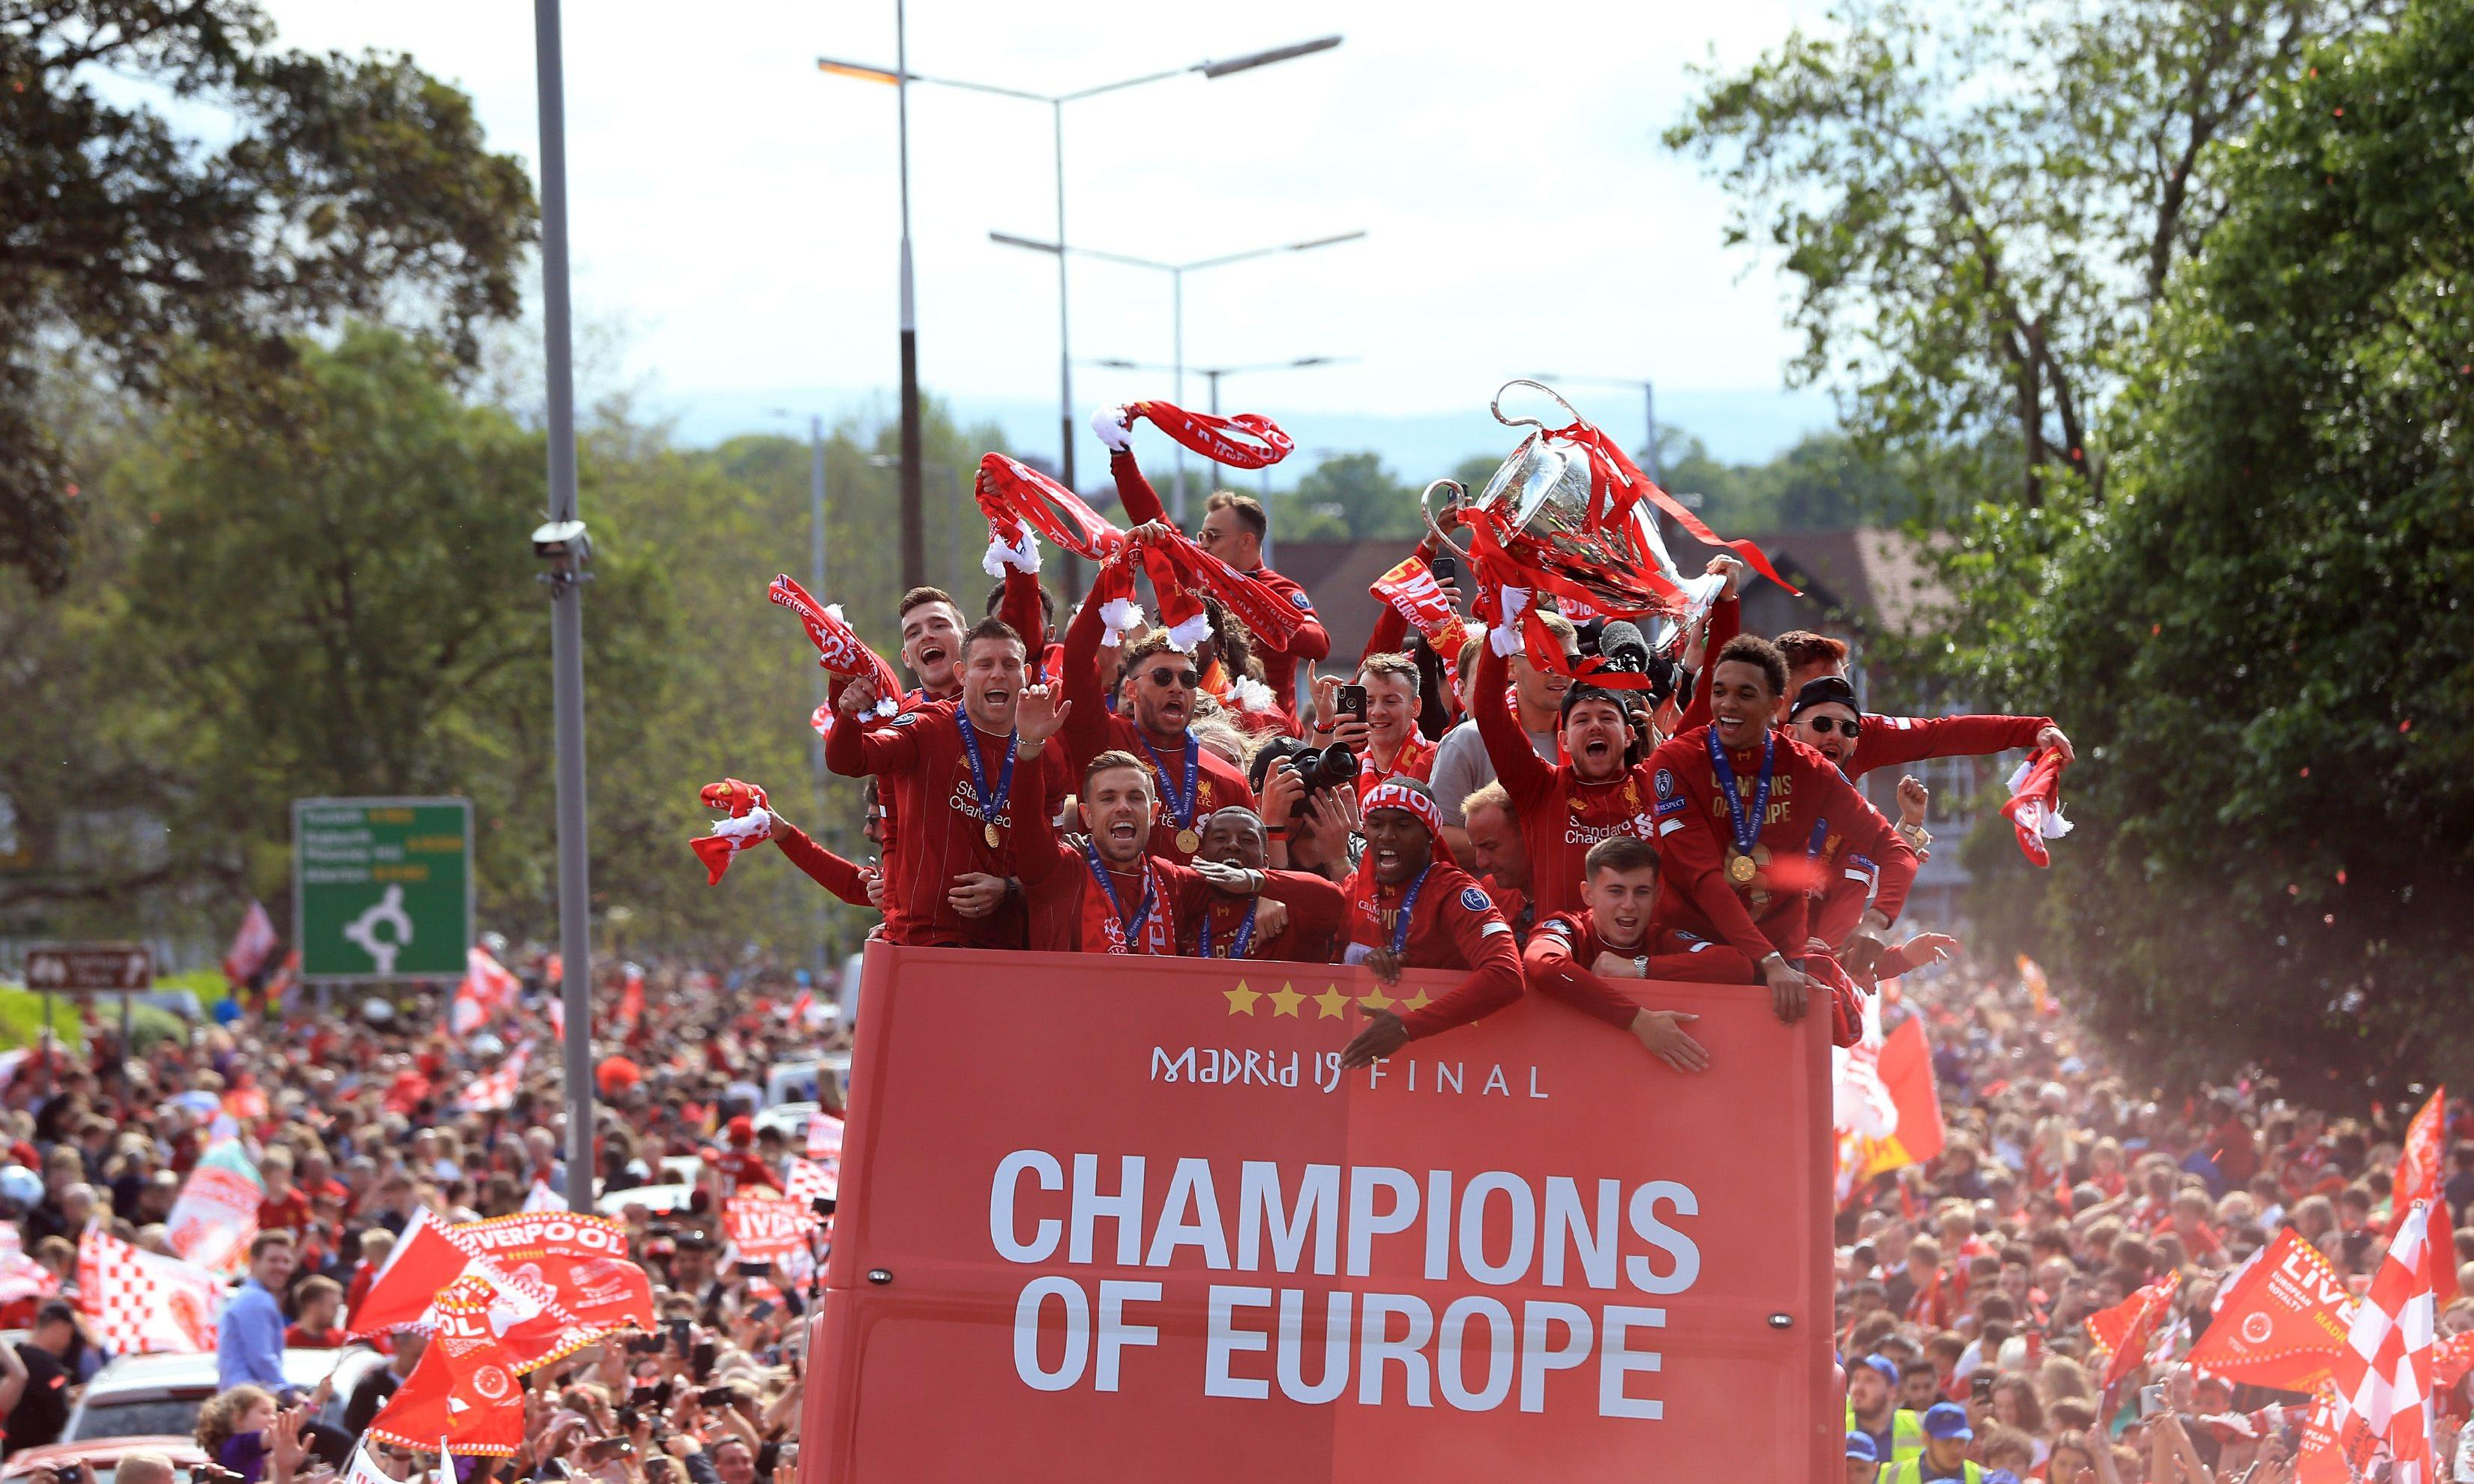 Triumphant Liverpool come home to a sea of red after Champions League win